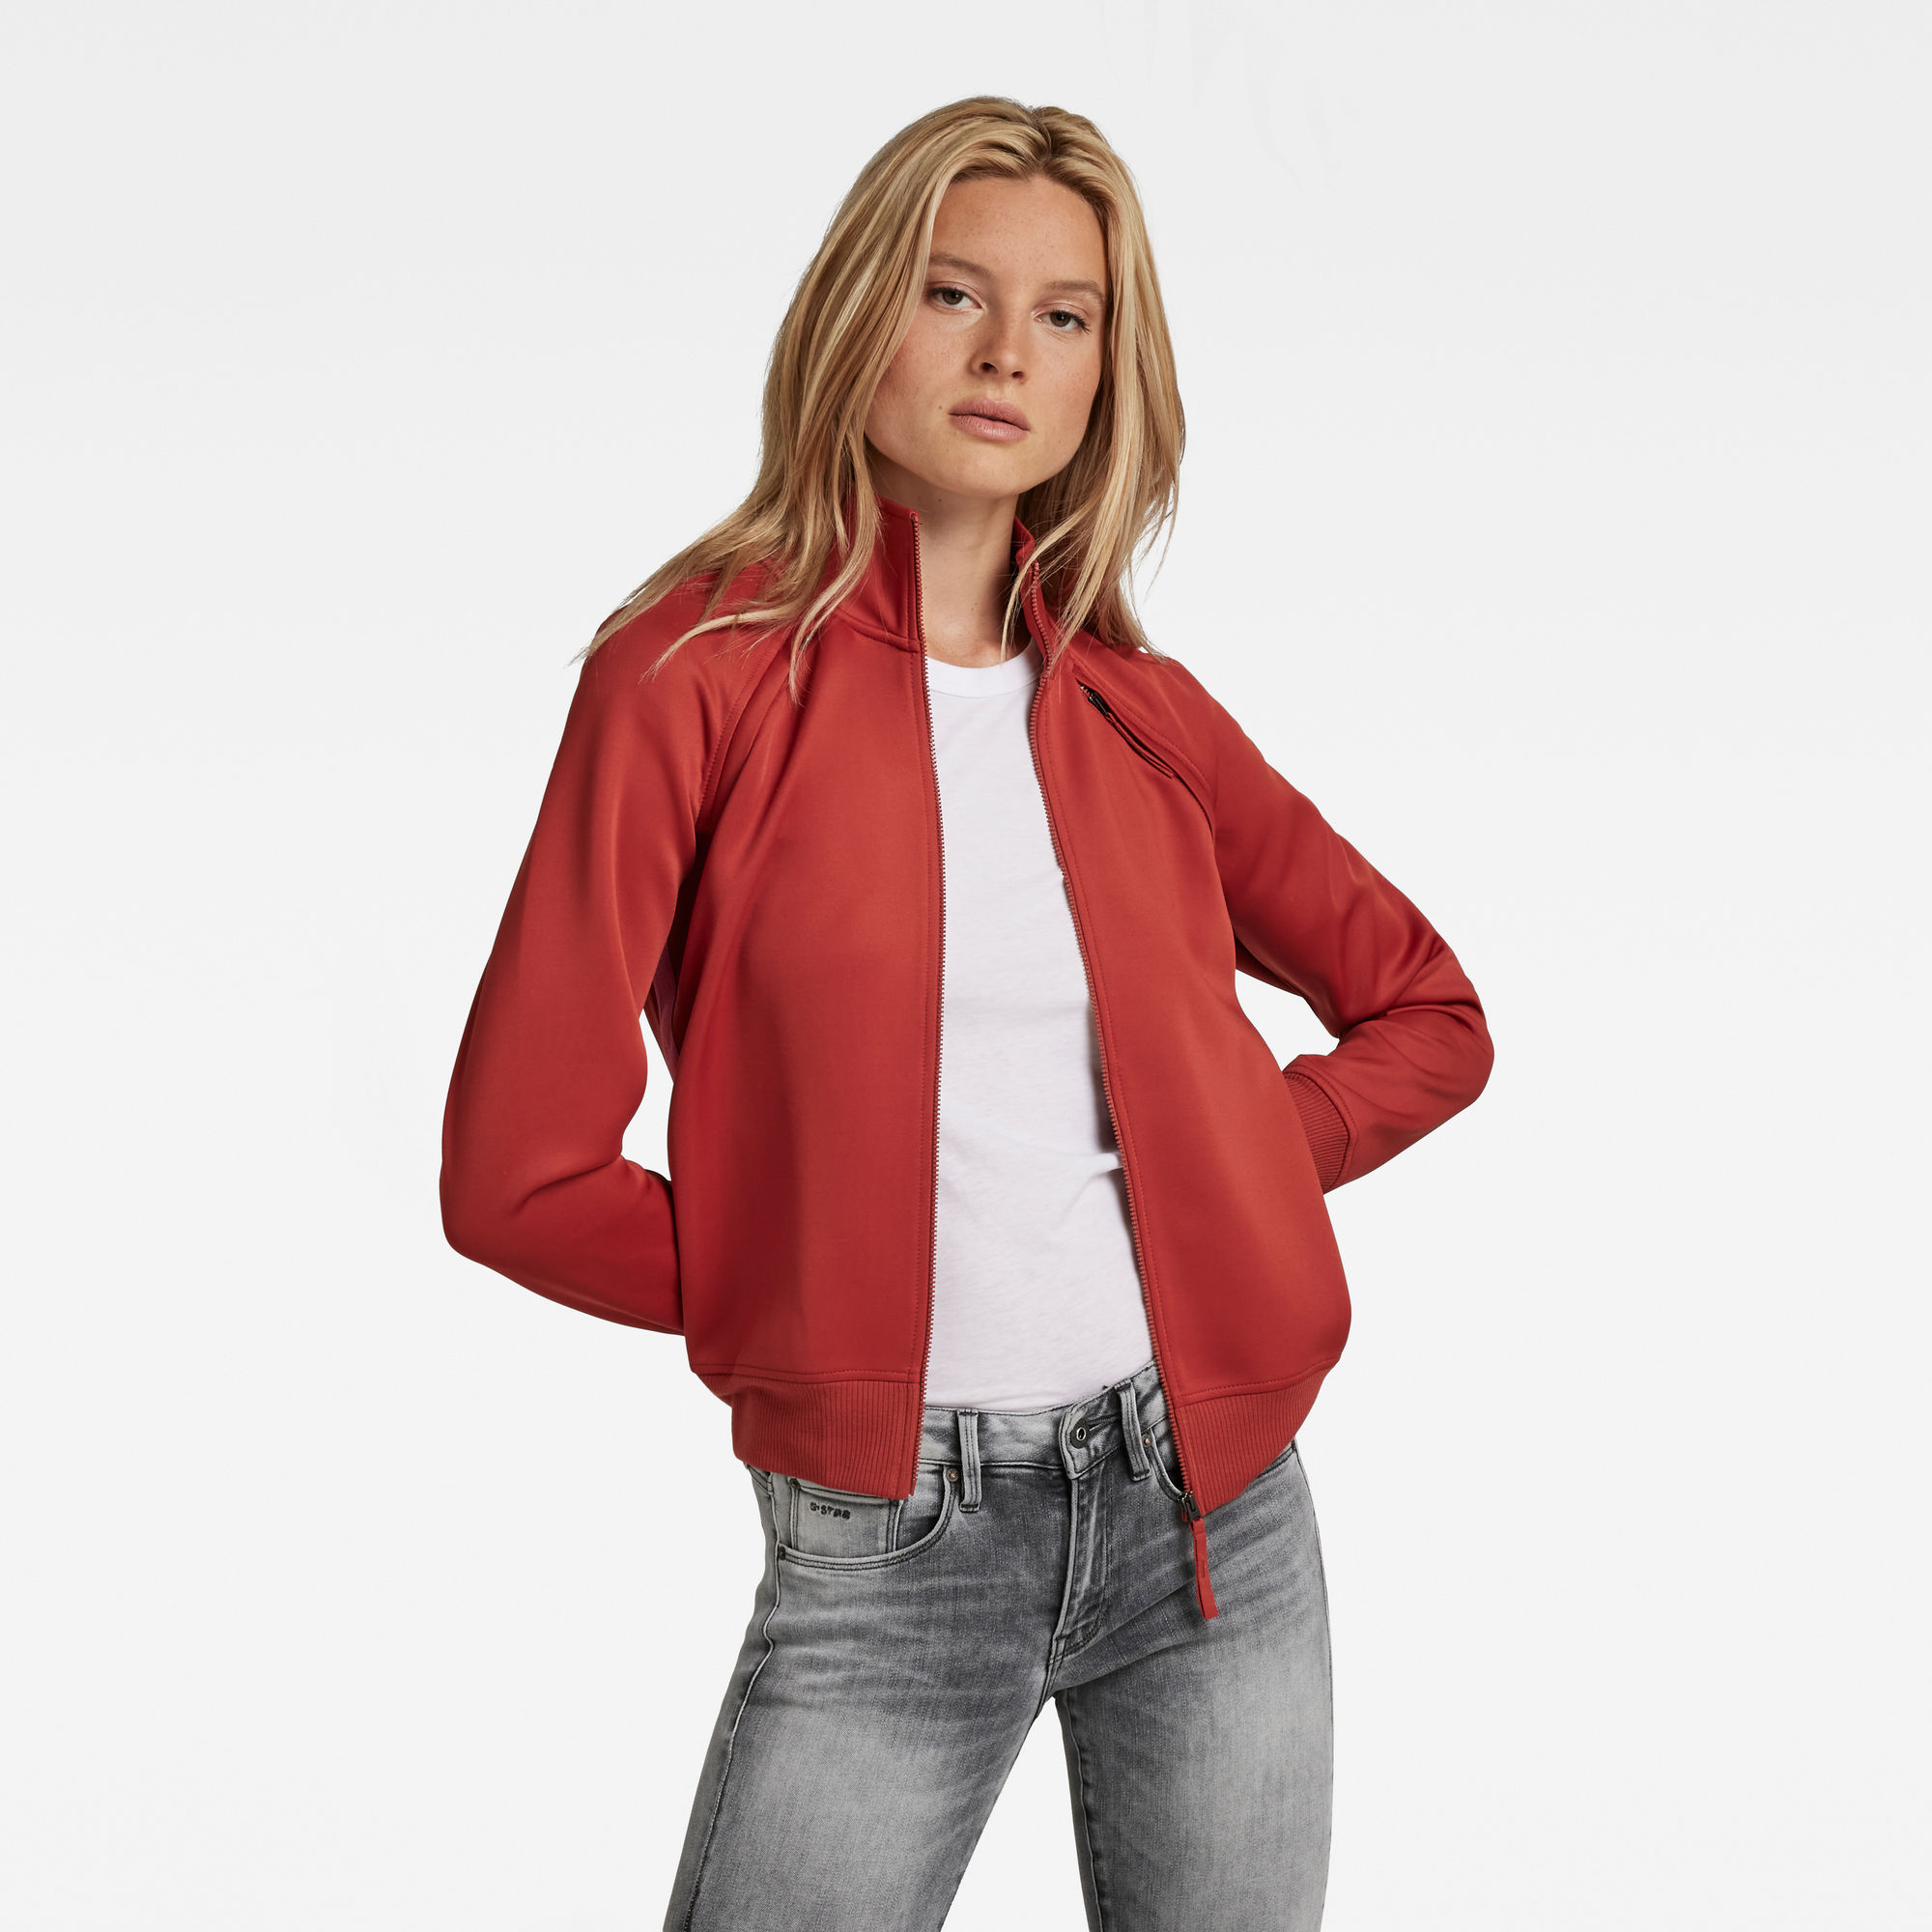 G-Star RAW Dames Branded Tape Track Top Rood